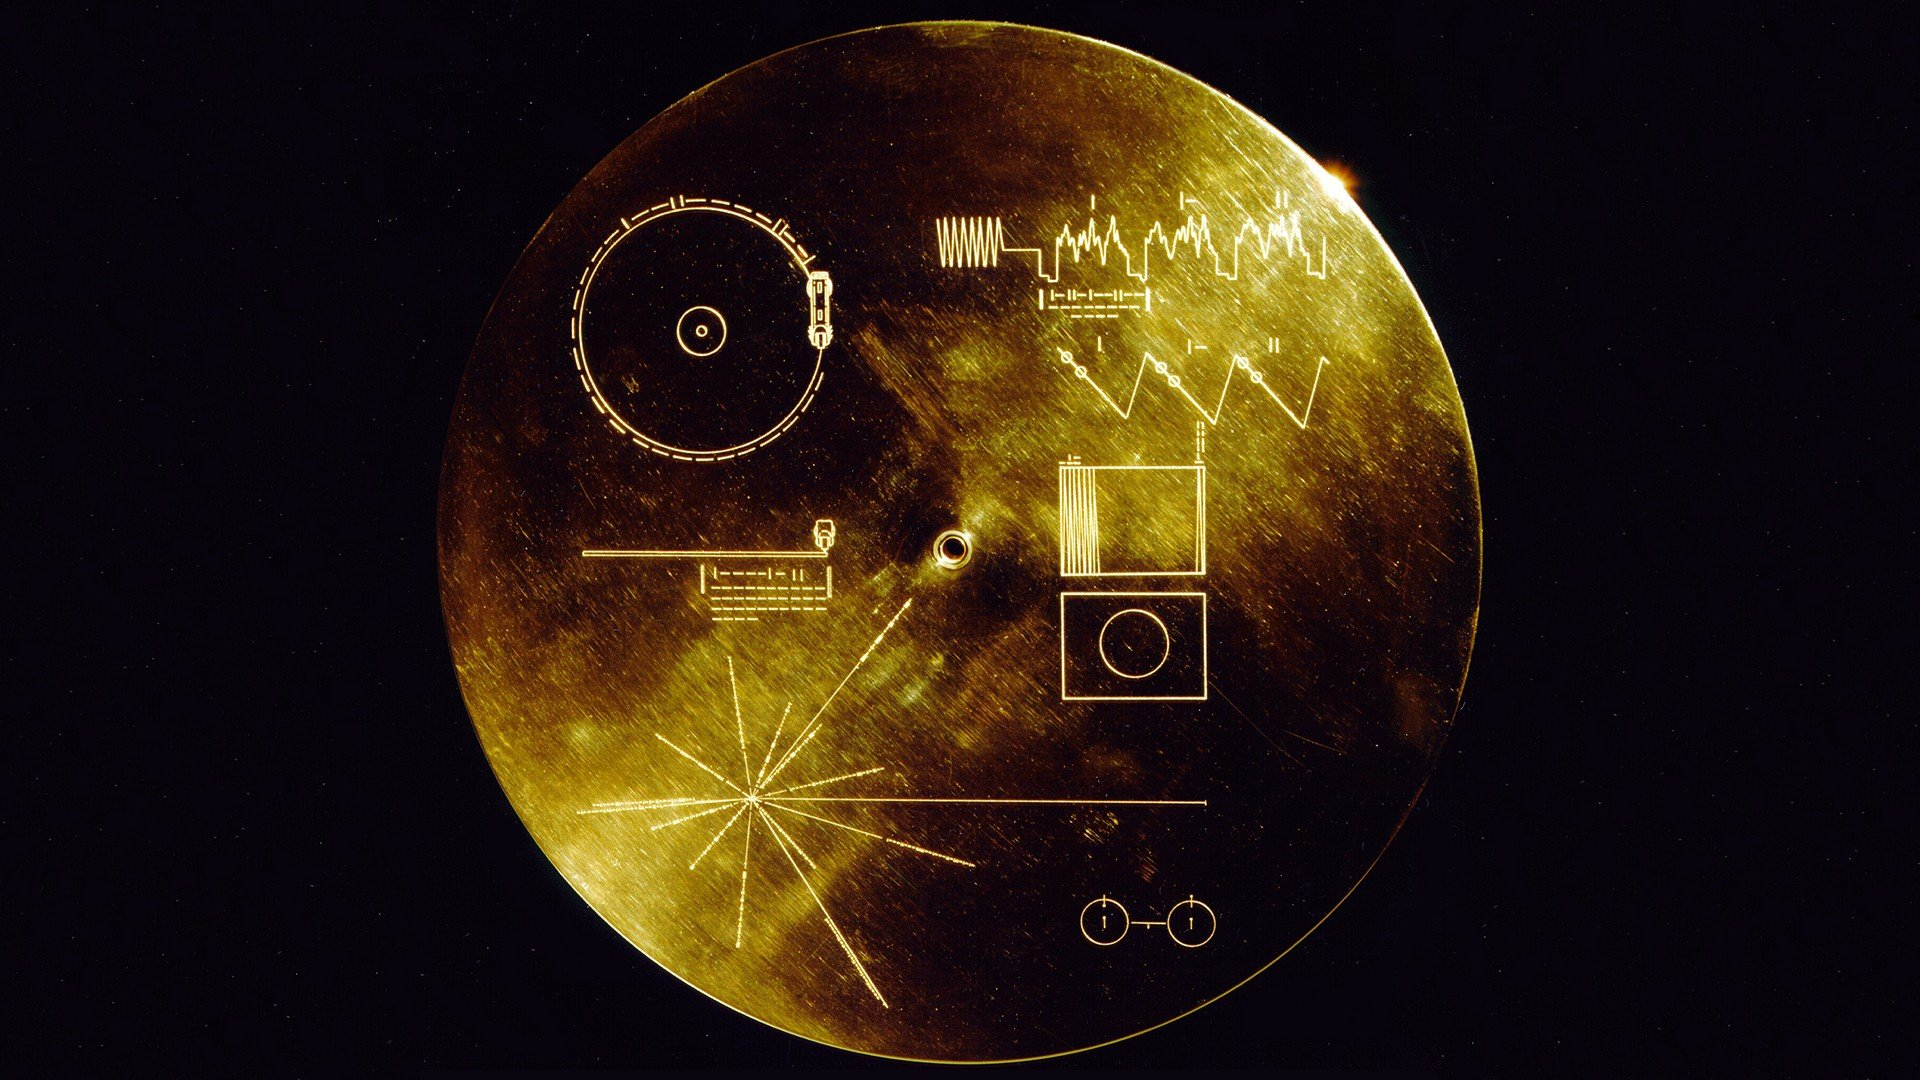 Voyager Golden Record Voyager Space Hd Wallpapers